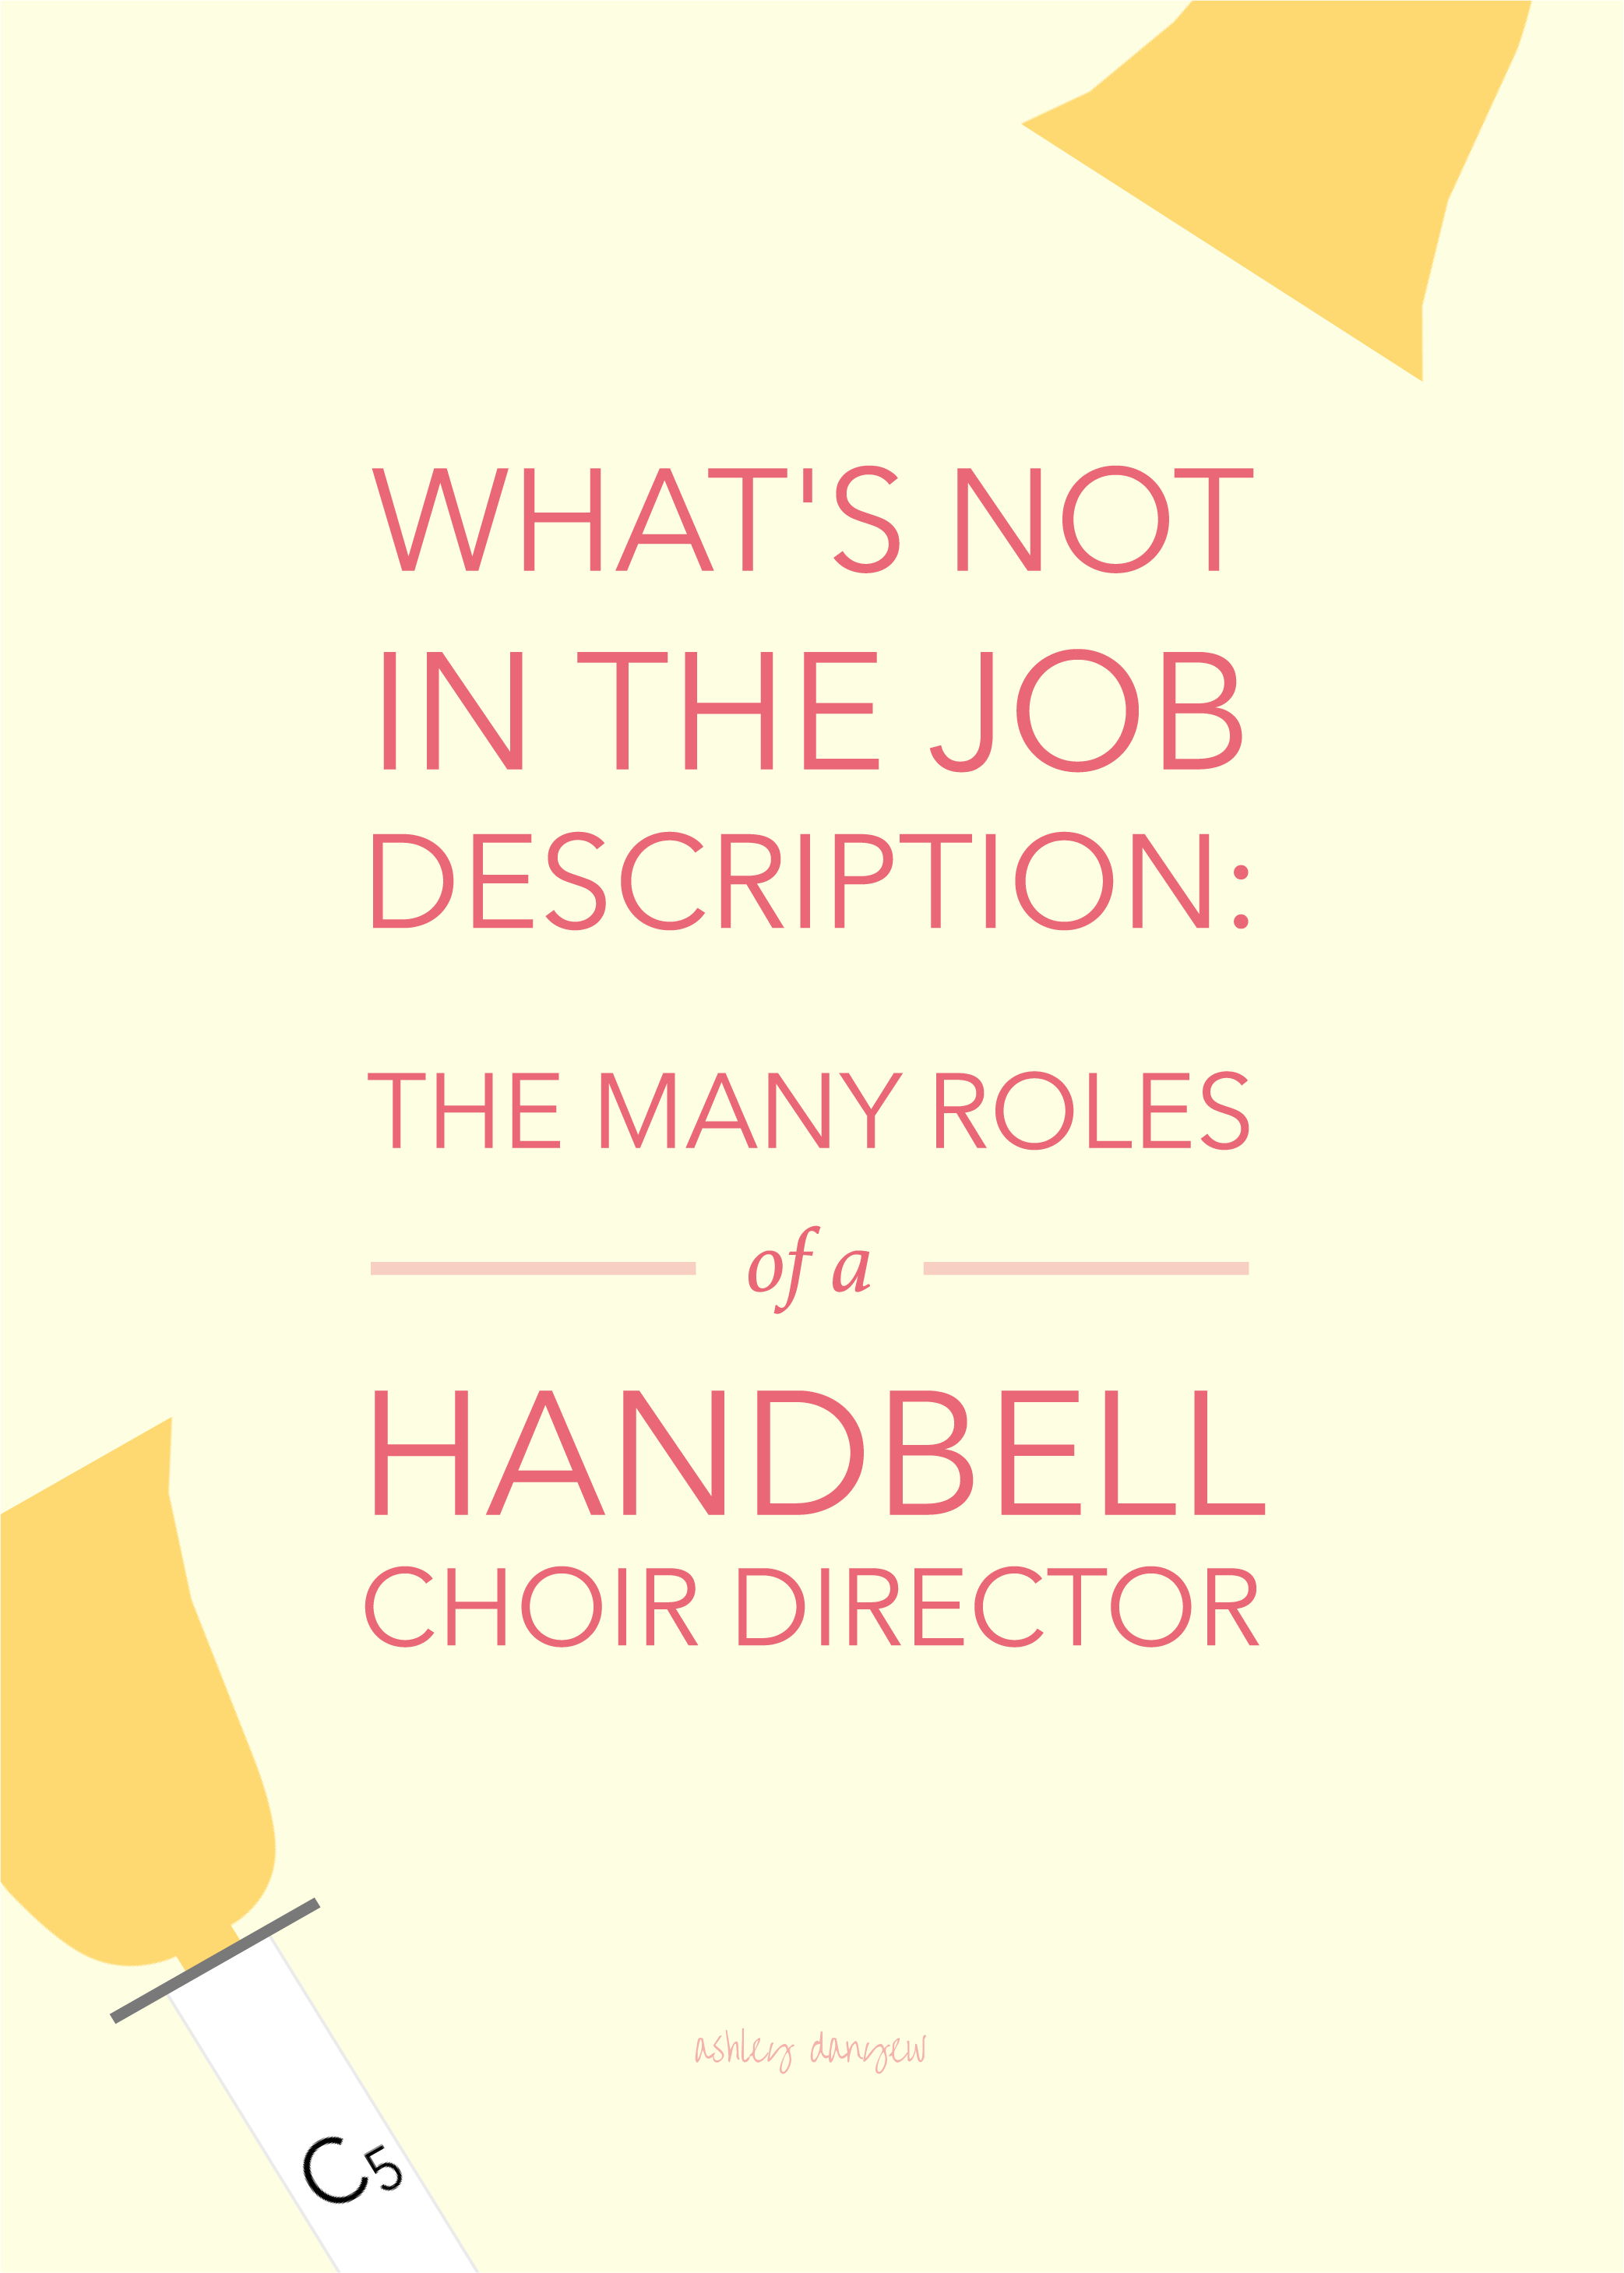 What's Not in the Job Description: The Many Roles of a Handbell Choir Director